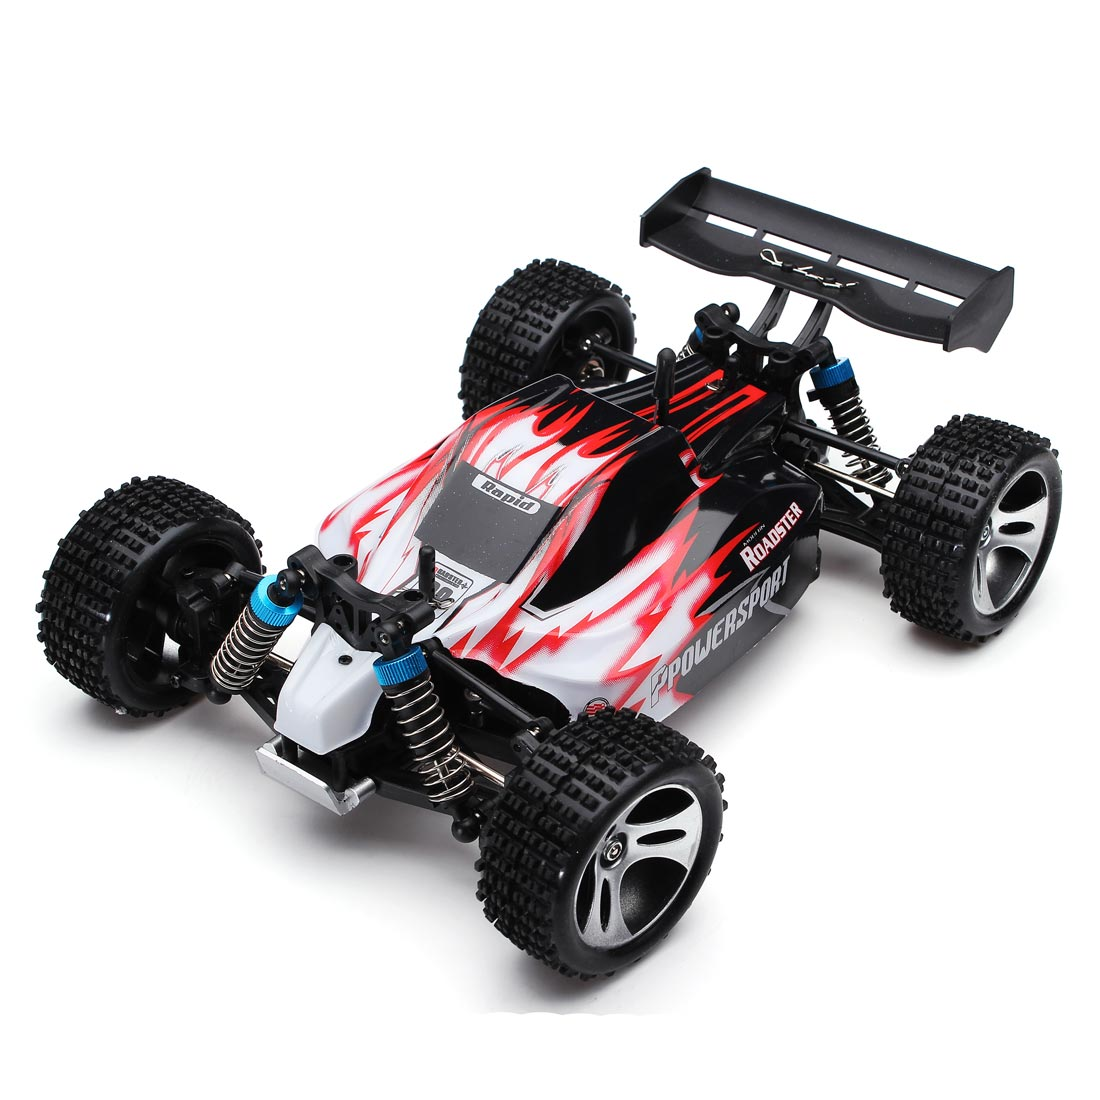 RC Car WLtoys A959 2.4G 1/18 Scale Remote Control Off-road Racing Car High Speed Stunt SUV Toy Gift For Boy RC Mini Car RTR wltoys k929 1 18 2 4ghz 4 channel high speed remote control racing car model toy green